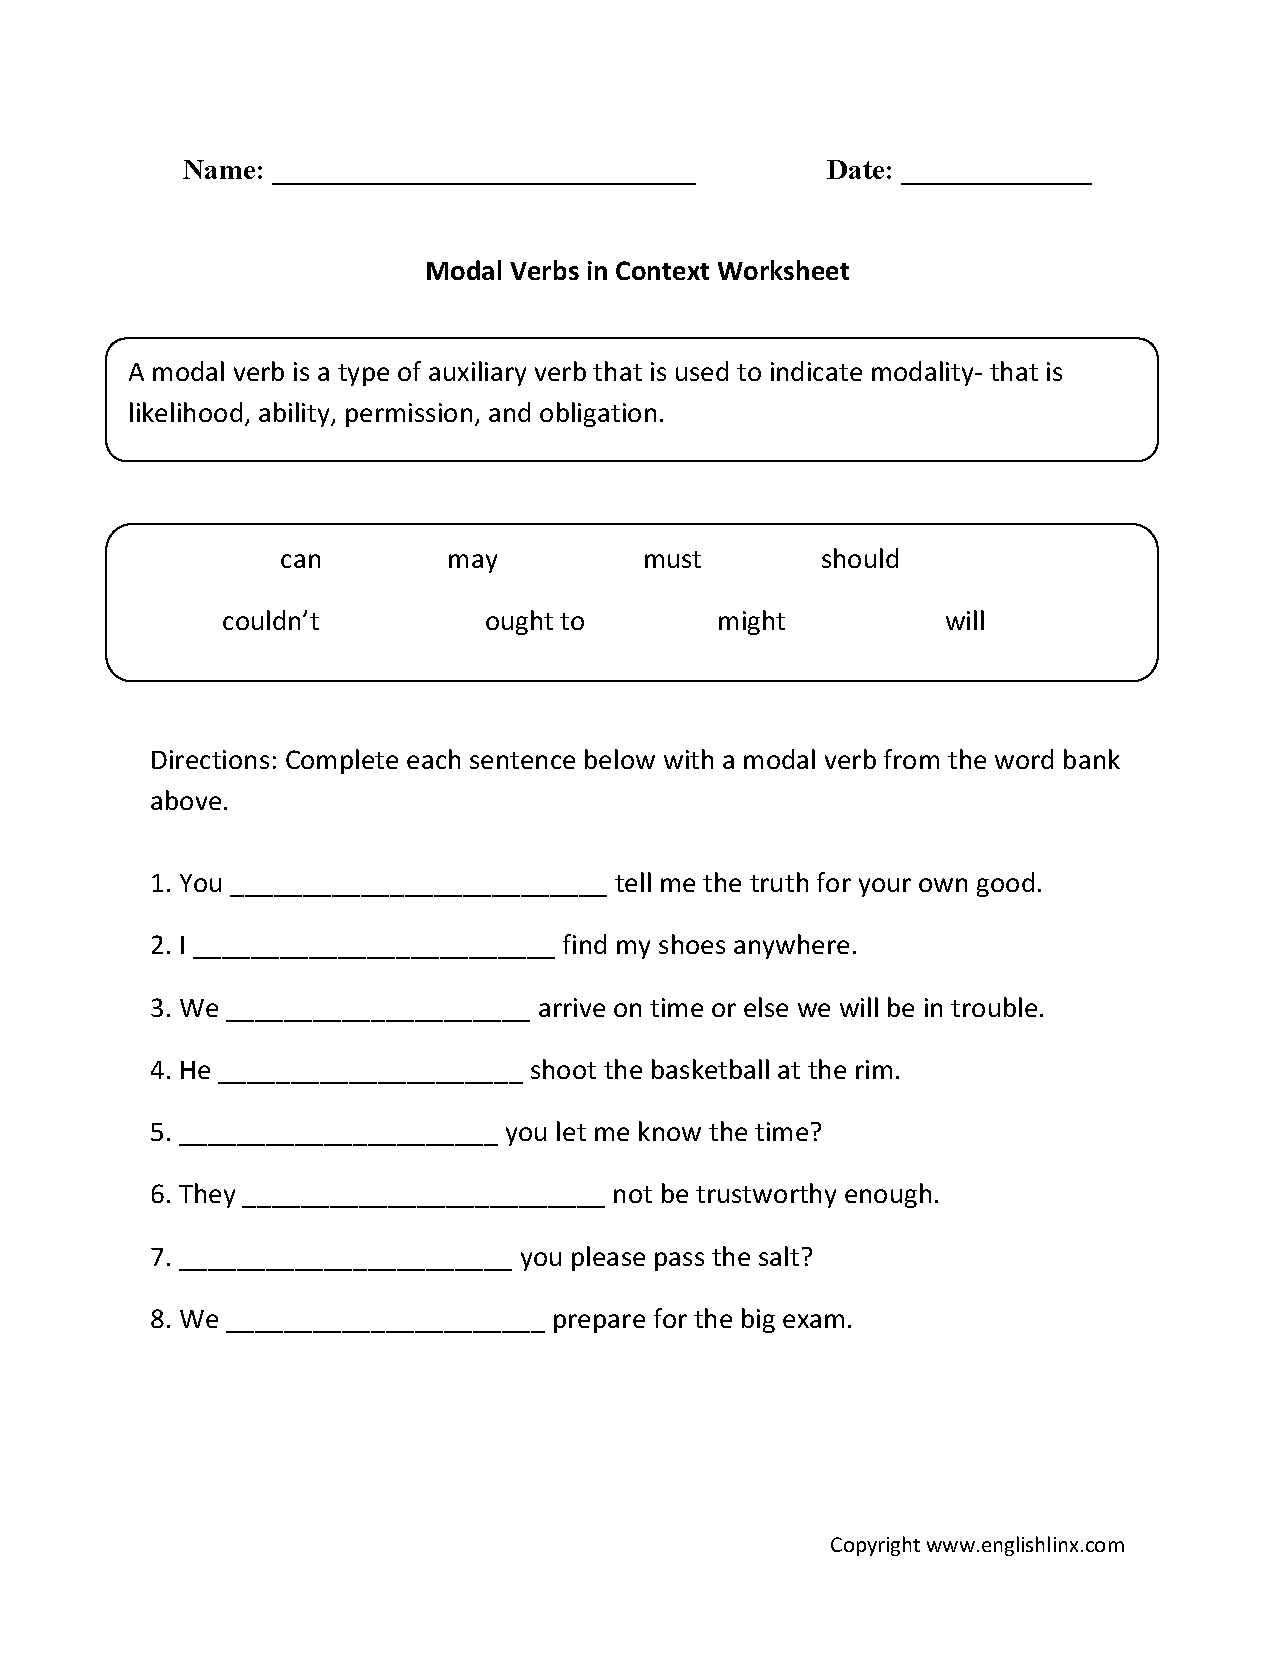 Aldiablosus  Scenic Worksheet On Verb  Coffemix With Fascinating Englishlinxcom  Verbs Worksheets With Astonishing Act Values Worksheet Also Printable Bible Study Worksheets For Adults In Addition Map Skills Worksheet And Exercise Worksheets As Well As Destinos Worksheets Additionally Free Handwriting Worksheet Maker From Coffemixcom With Aldiablosus  Fascinating Worksheet On Verb  Coffemix With Astonishing Englishlinxcom  Verbs Worksheets And Scenic Act Values Worksheet Also Printable Bible Study Worksheets For Adults In Addition Map Skills Worksheet From Coffemixcom